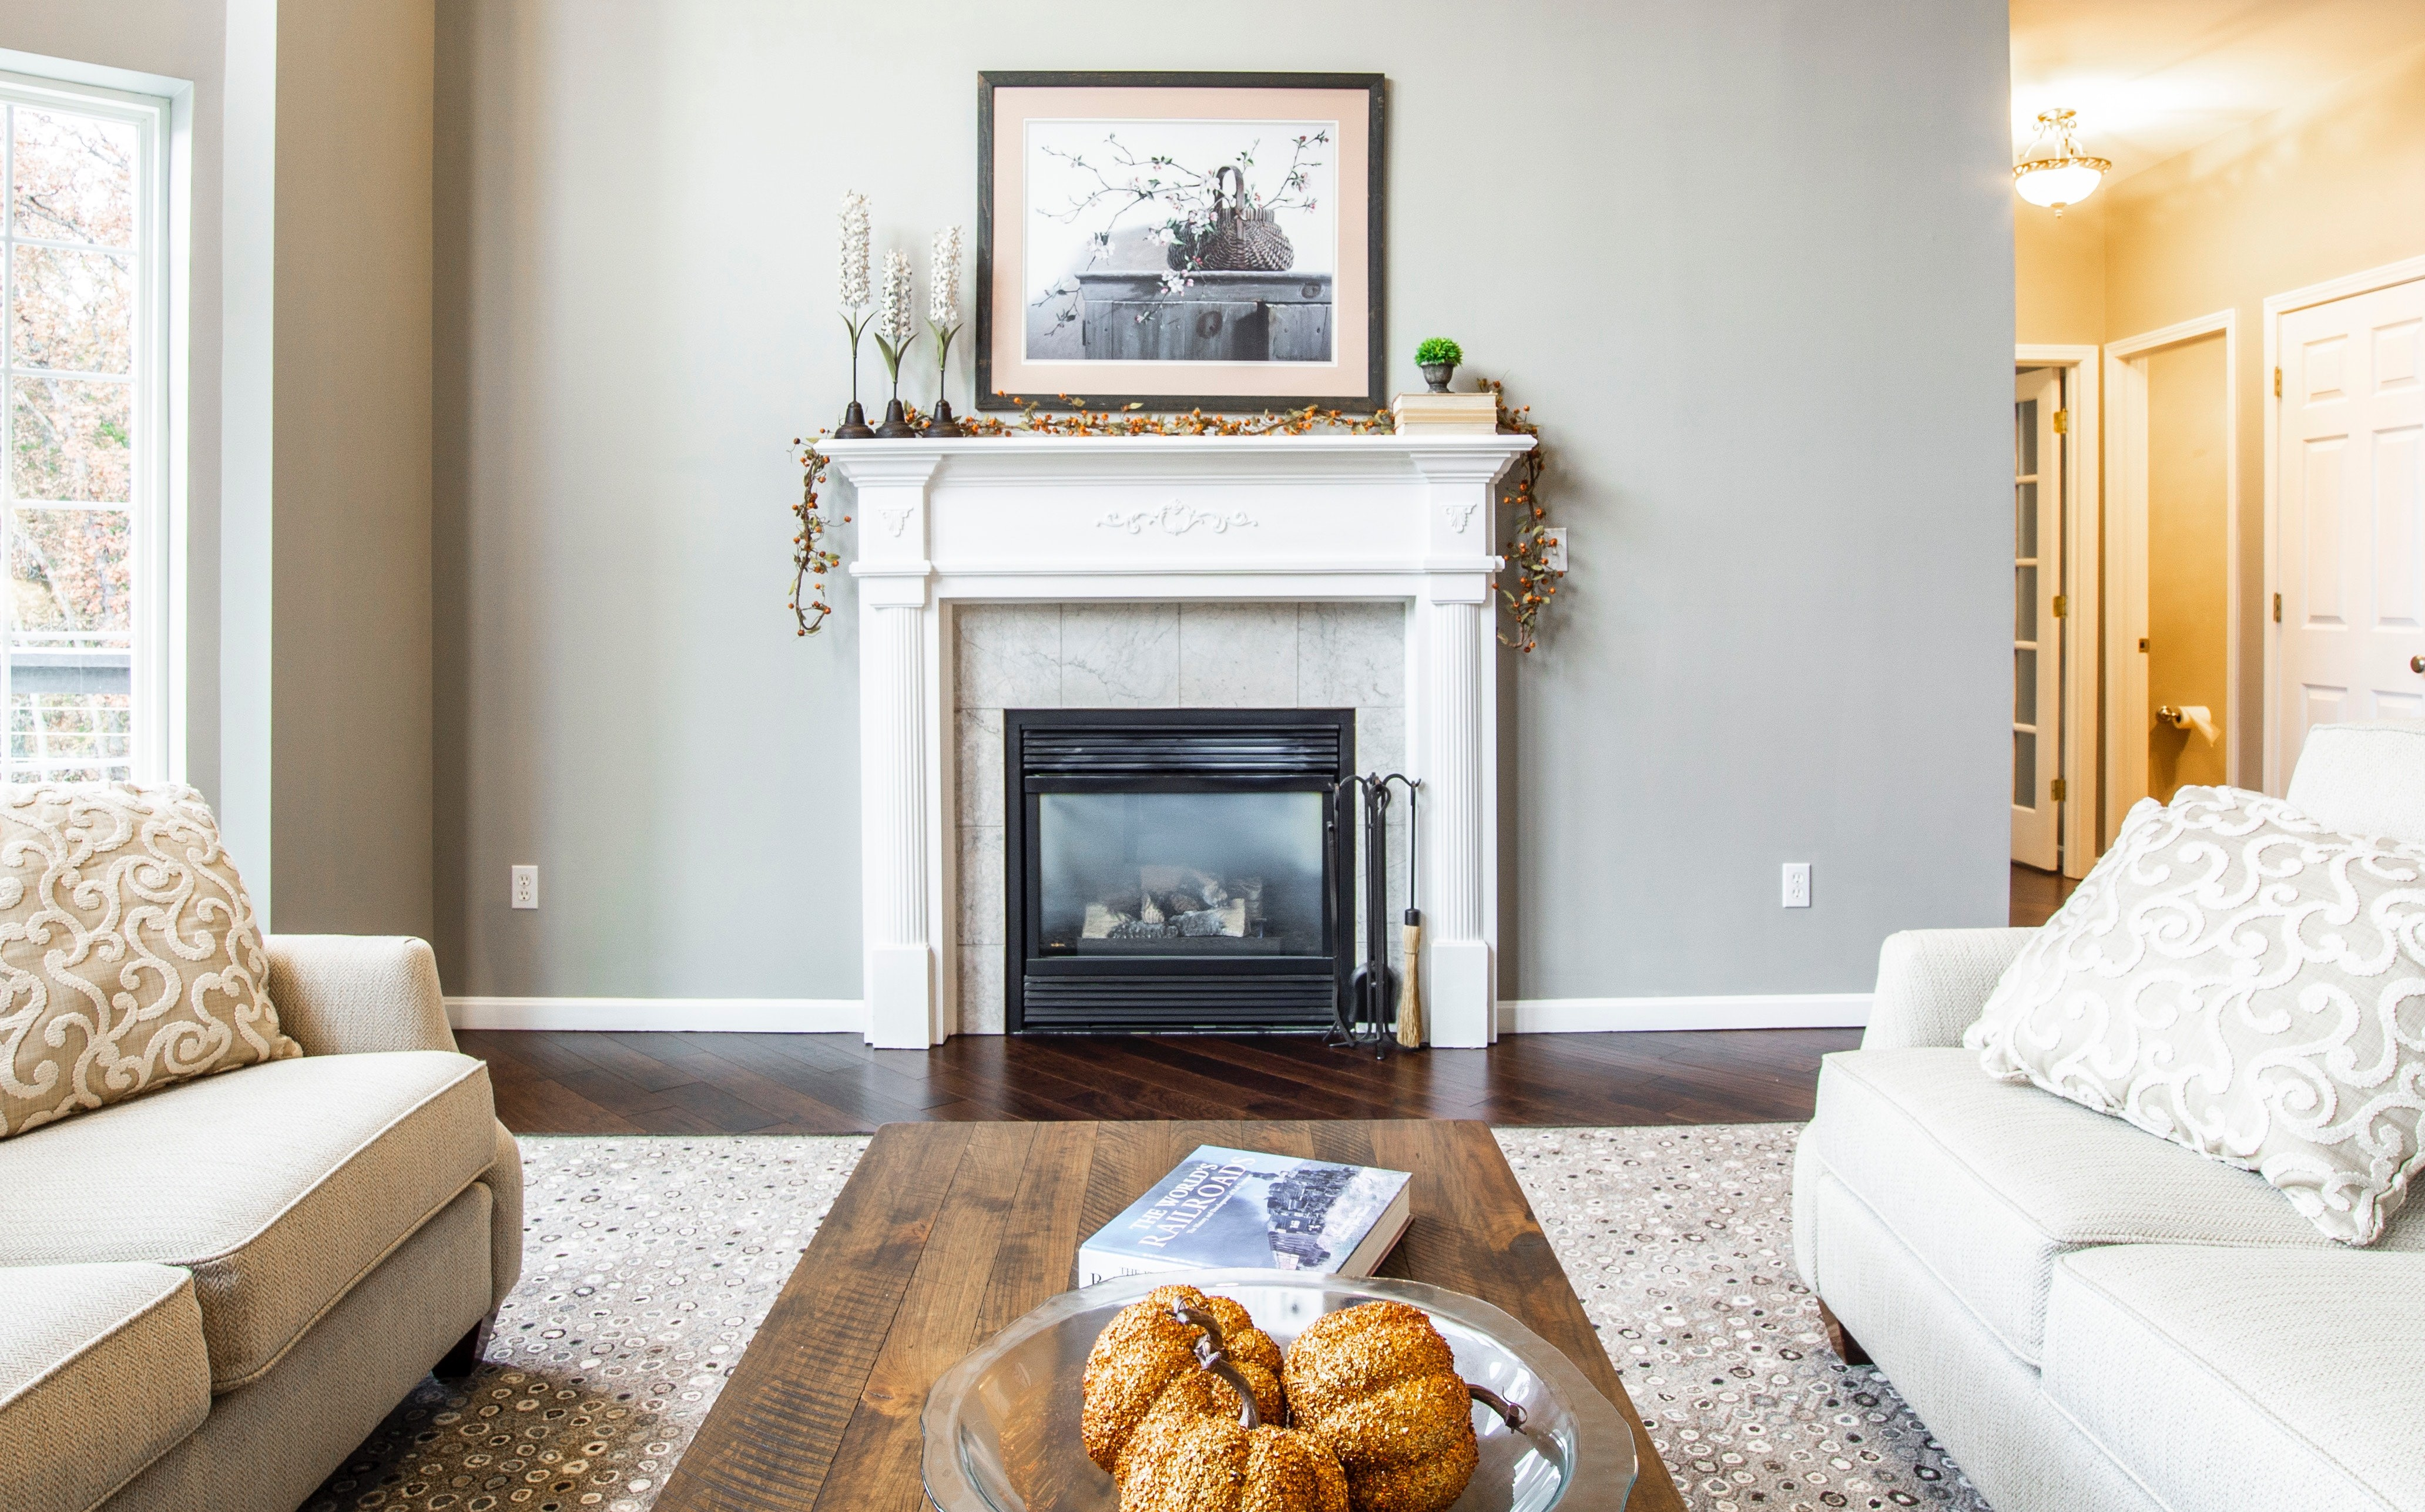 5 Design Ideas To Upgrade Your Fireplace